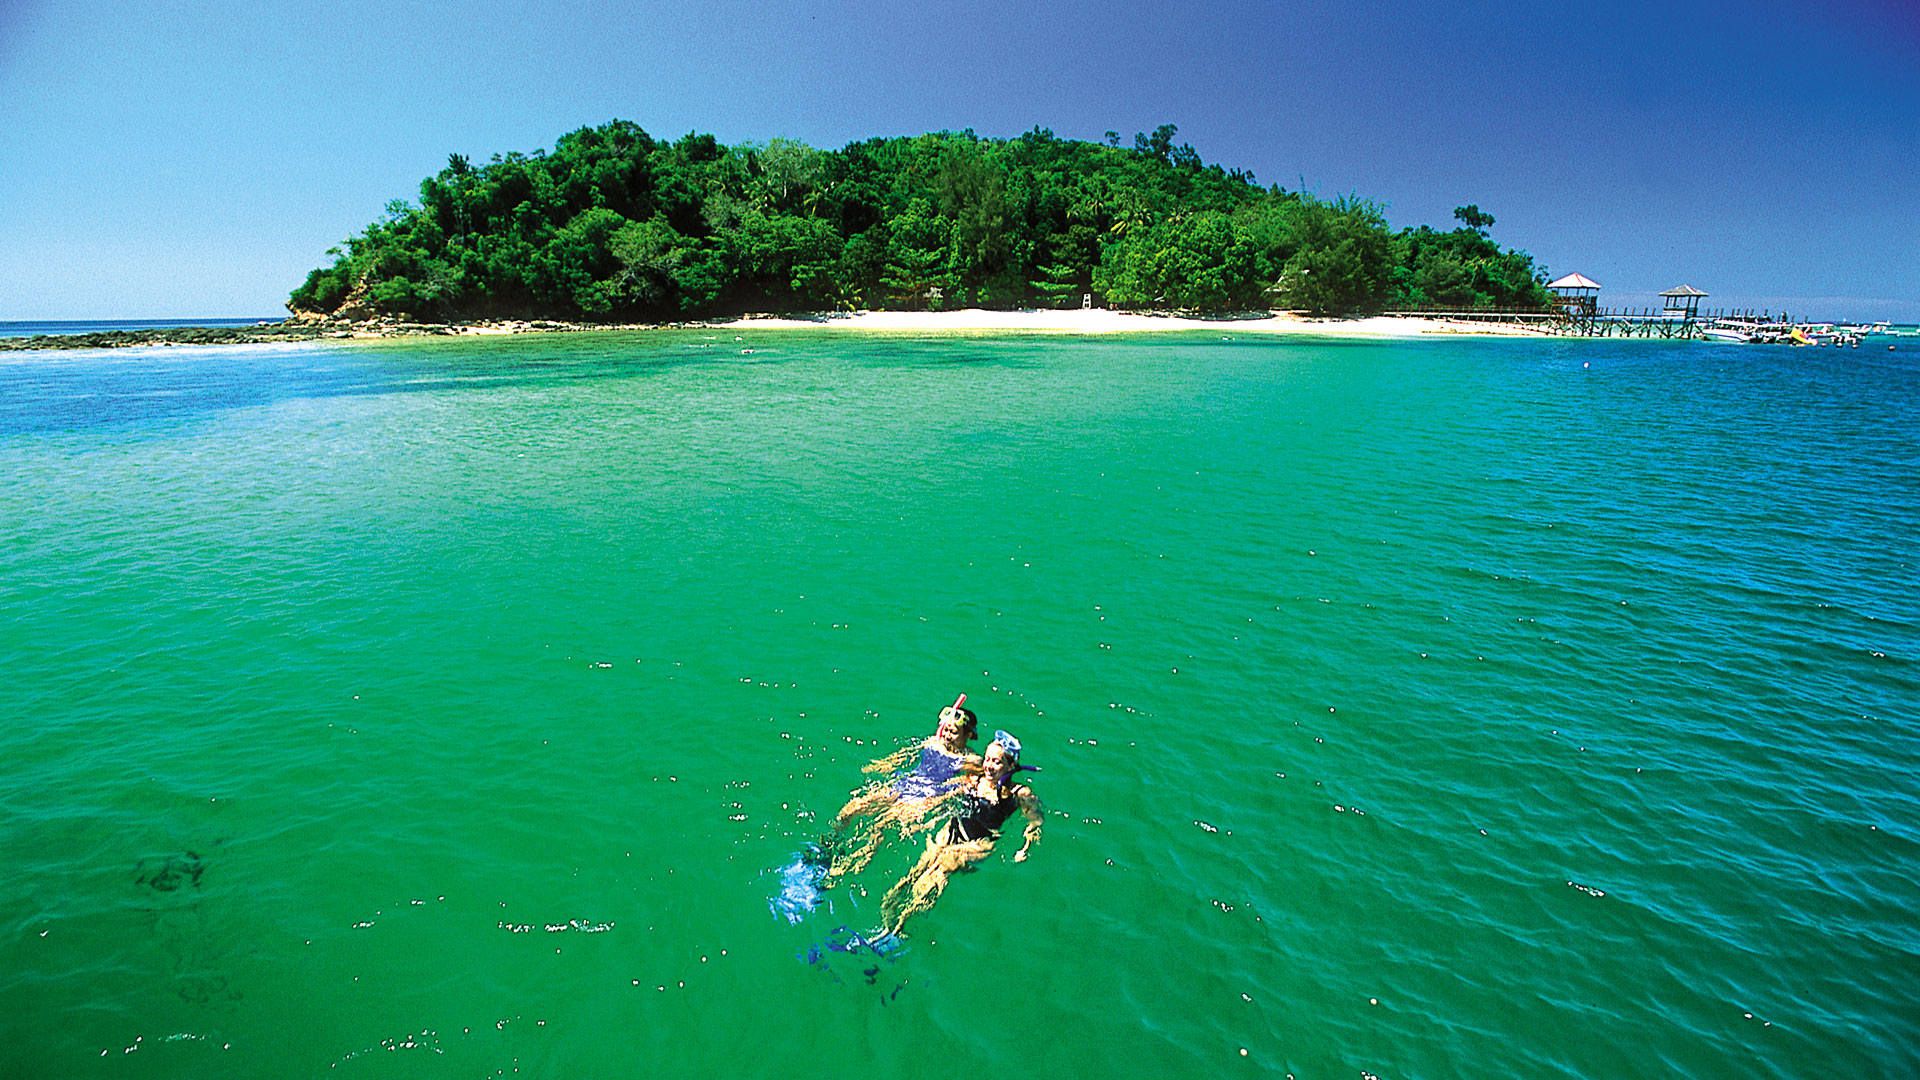 essay vacation to langkawi island Essay visit to langkawi island (primary homework help victorian houses) apr 9 2018 @dessherrera so if his personality is dope youd date him im doing a research.